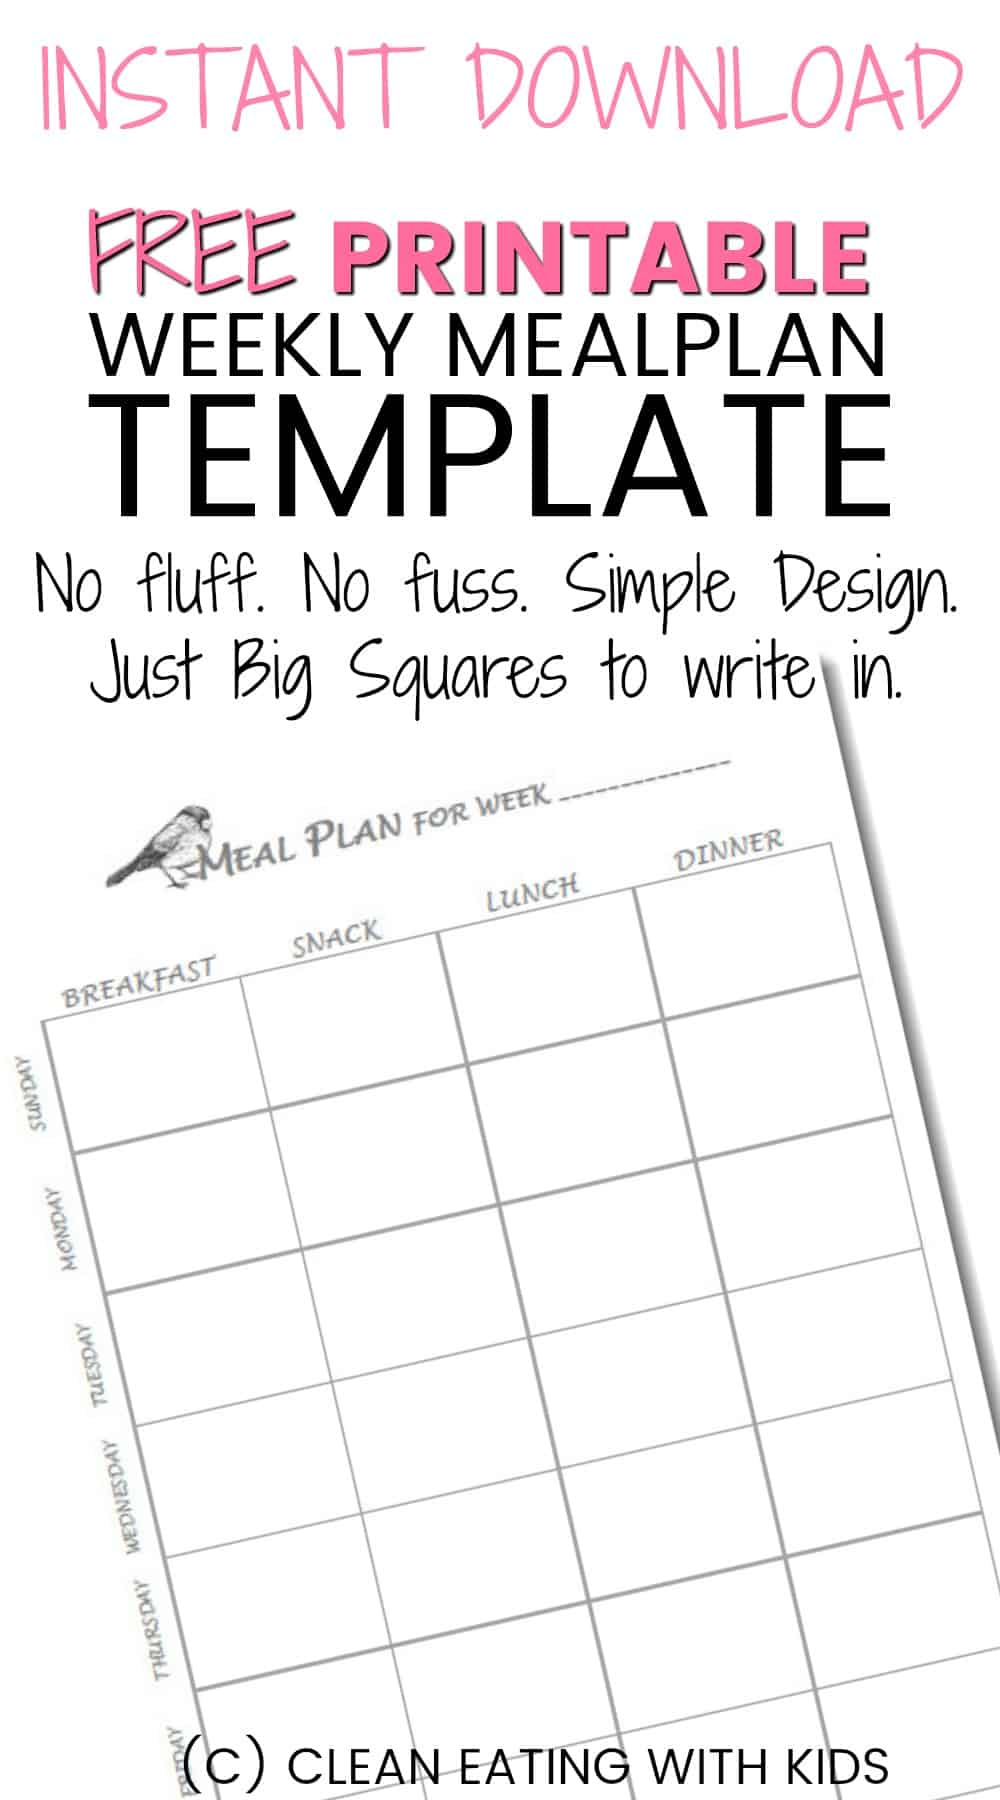 You are going to love this simple. no fluff meal plan printable. Easy to use with practical, big squares you can actually write in.